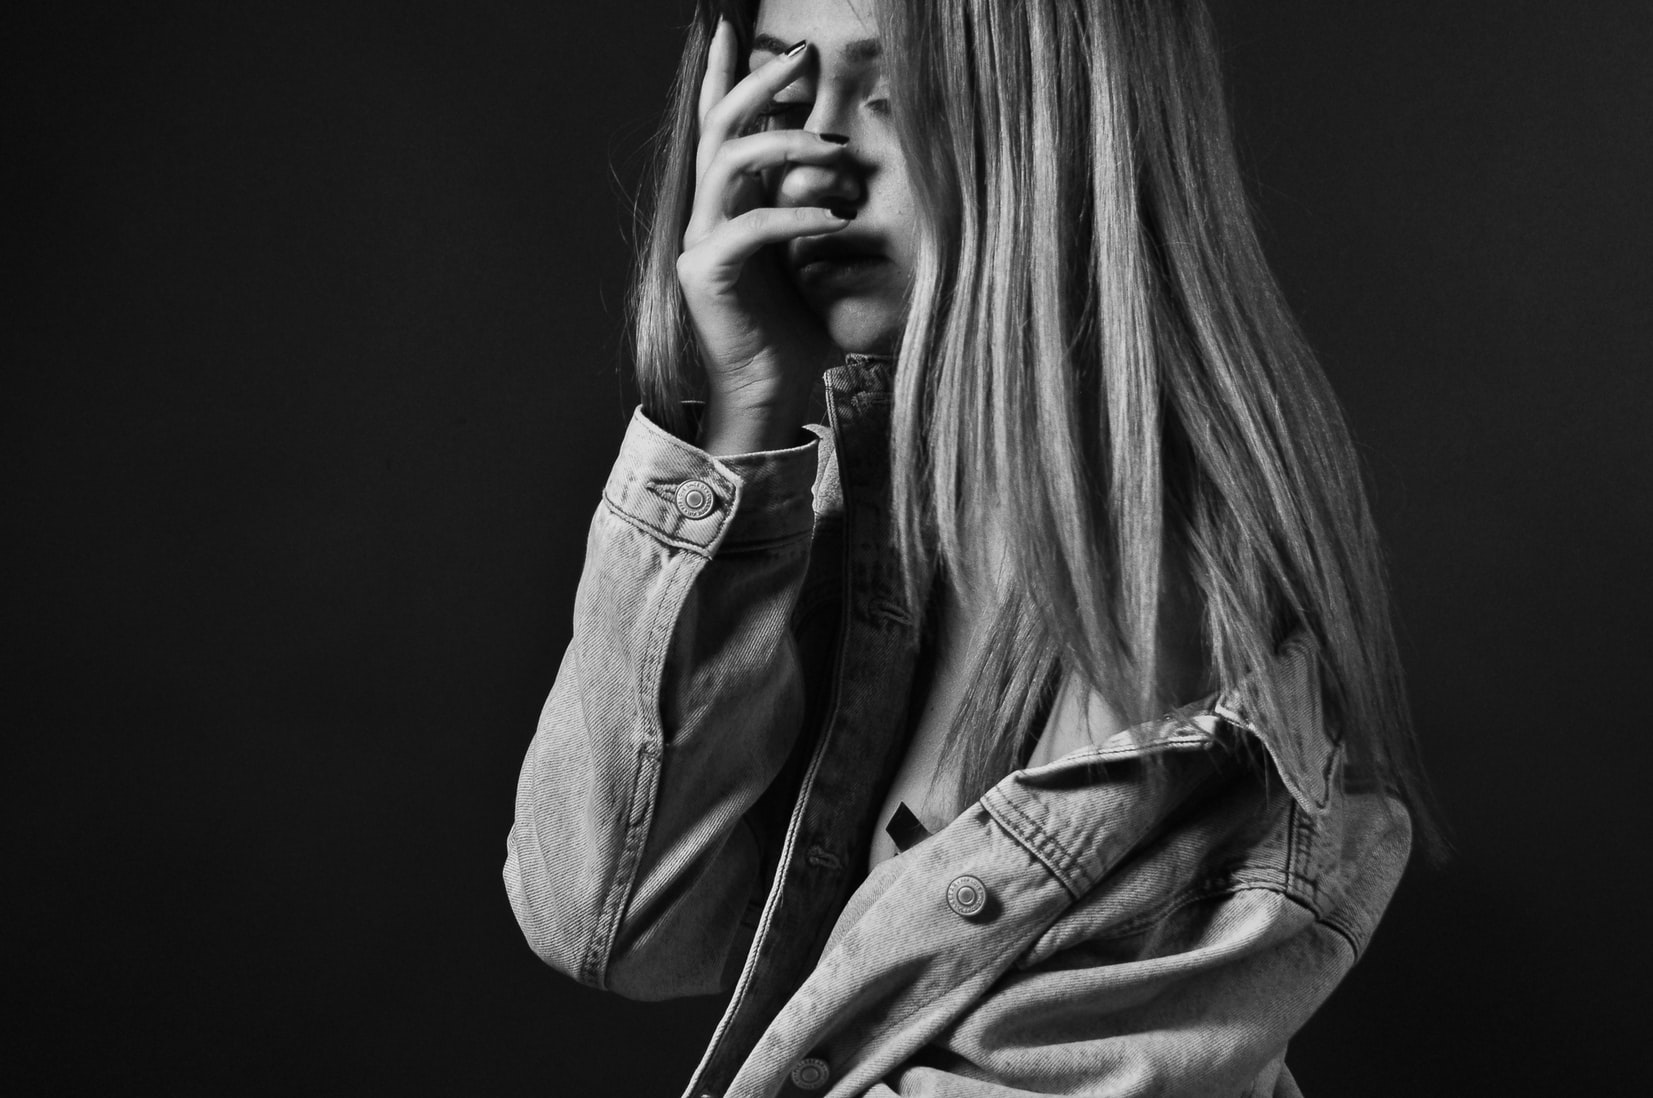 Young girl with depression covering her face with palm